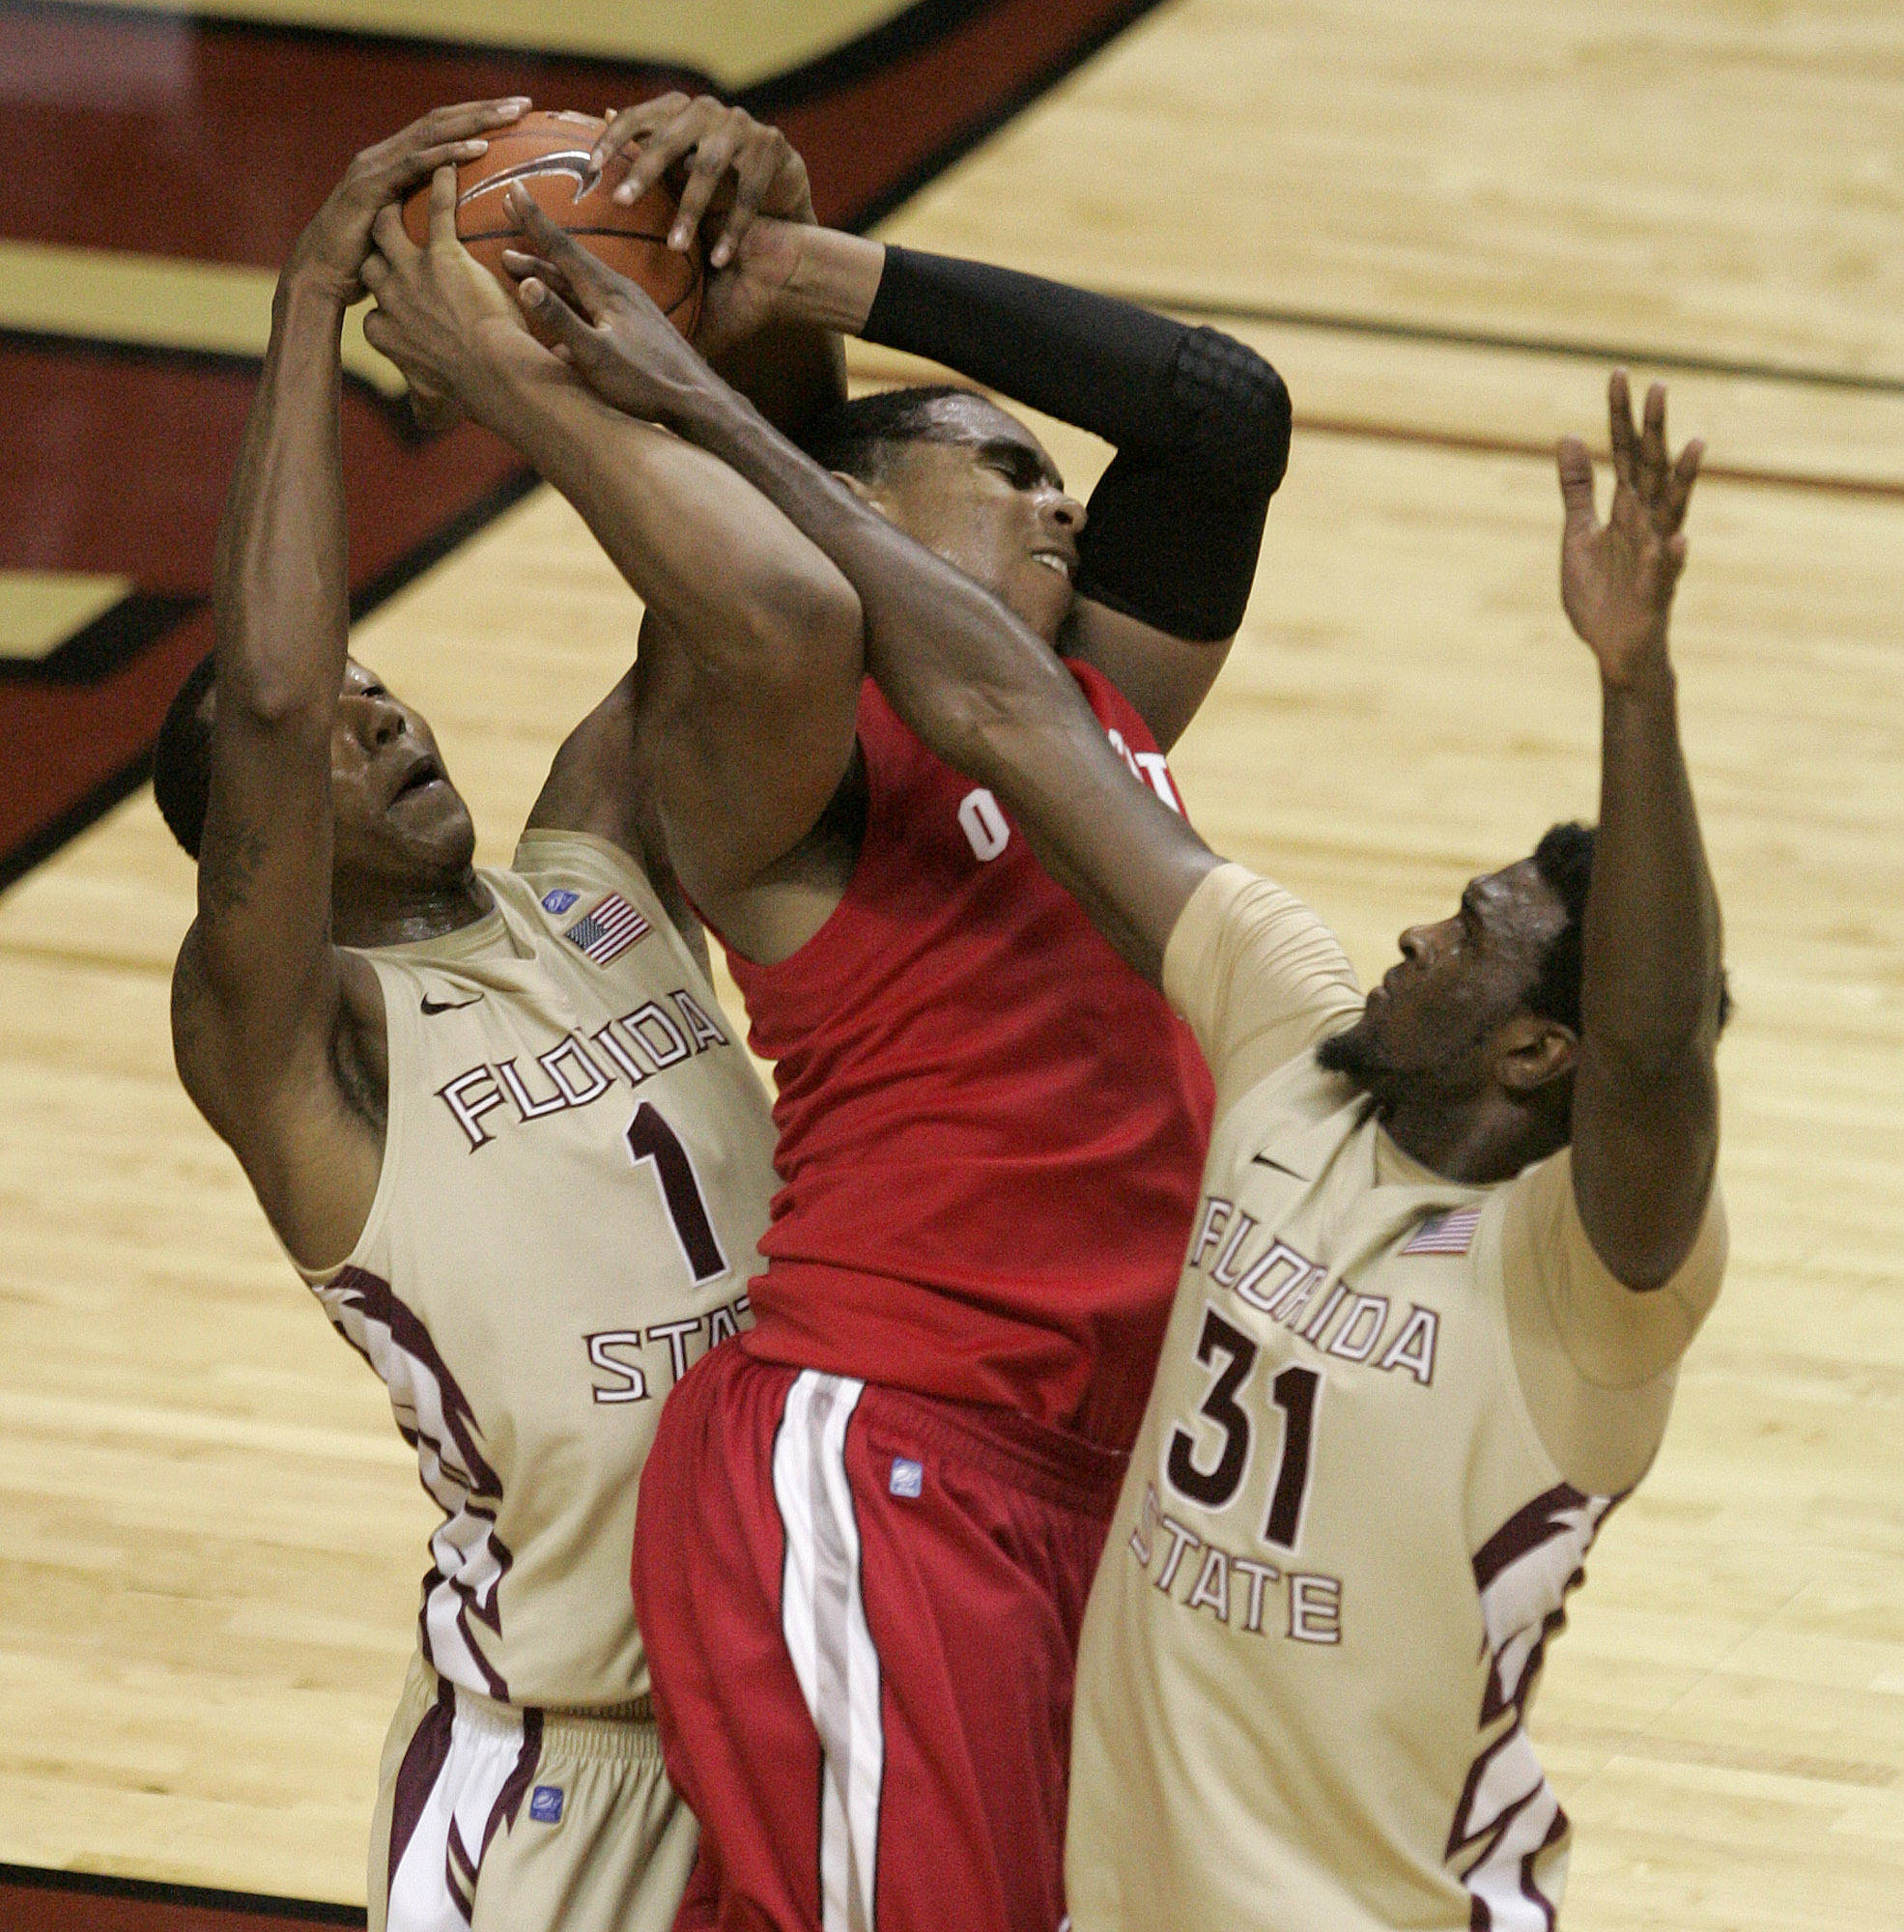 Ohio State's Jared Sullinger is tied up by Florida State's Xavier Gibson, left and Chris Singleton in the second half.(AP Photo/Steve Cannon)